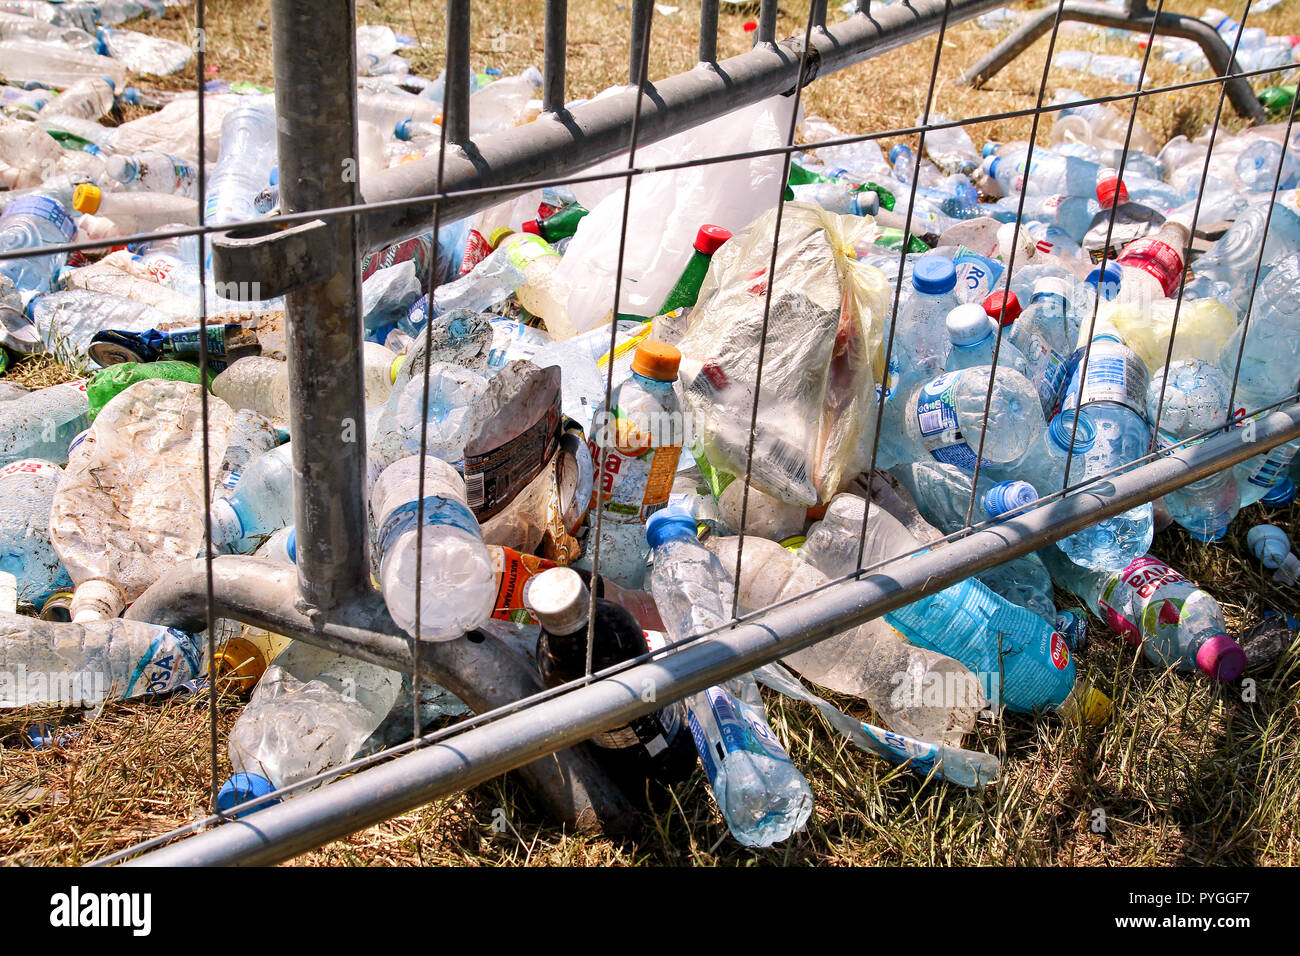 Belgrade, Serbia - June 25, 2017: Plastic bottles tossed by the metal fence. Used empty pet bottles thrown away and left on grass after an open air. Stock Photo